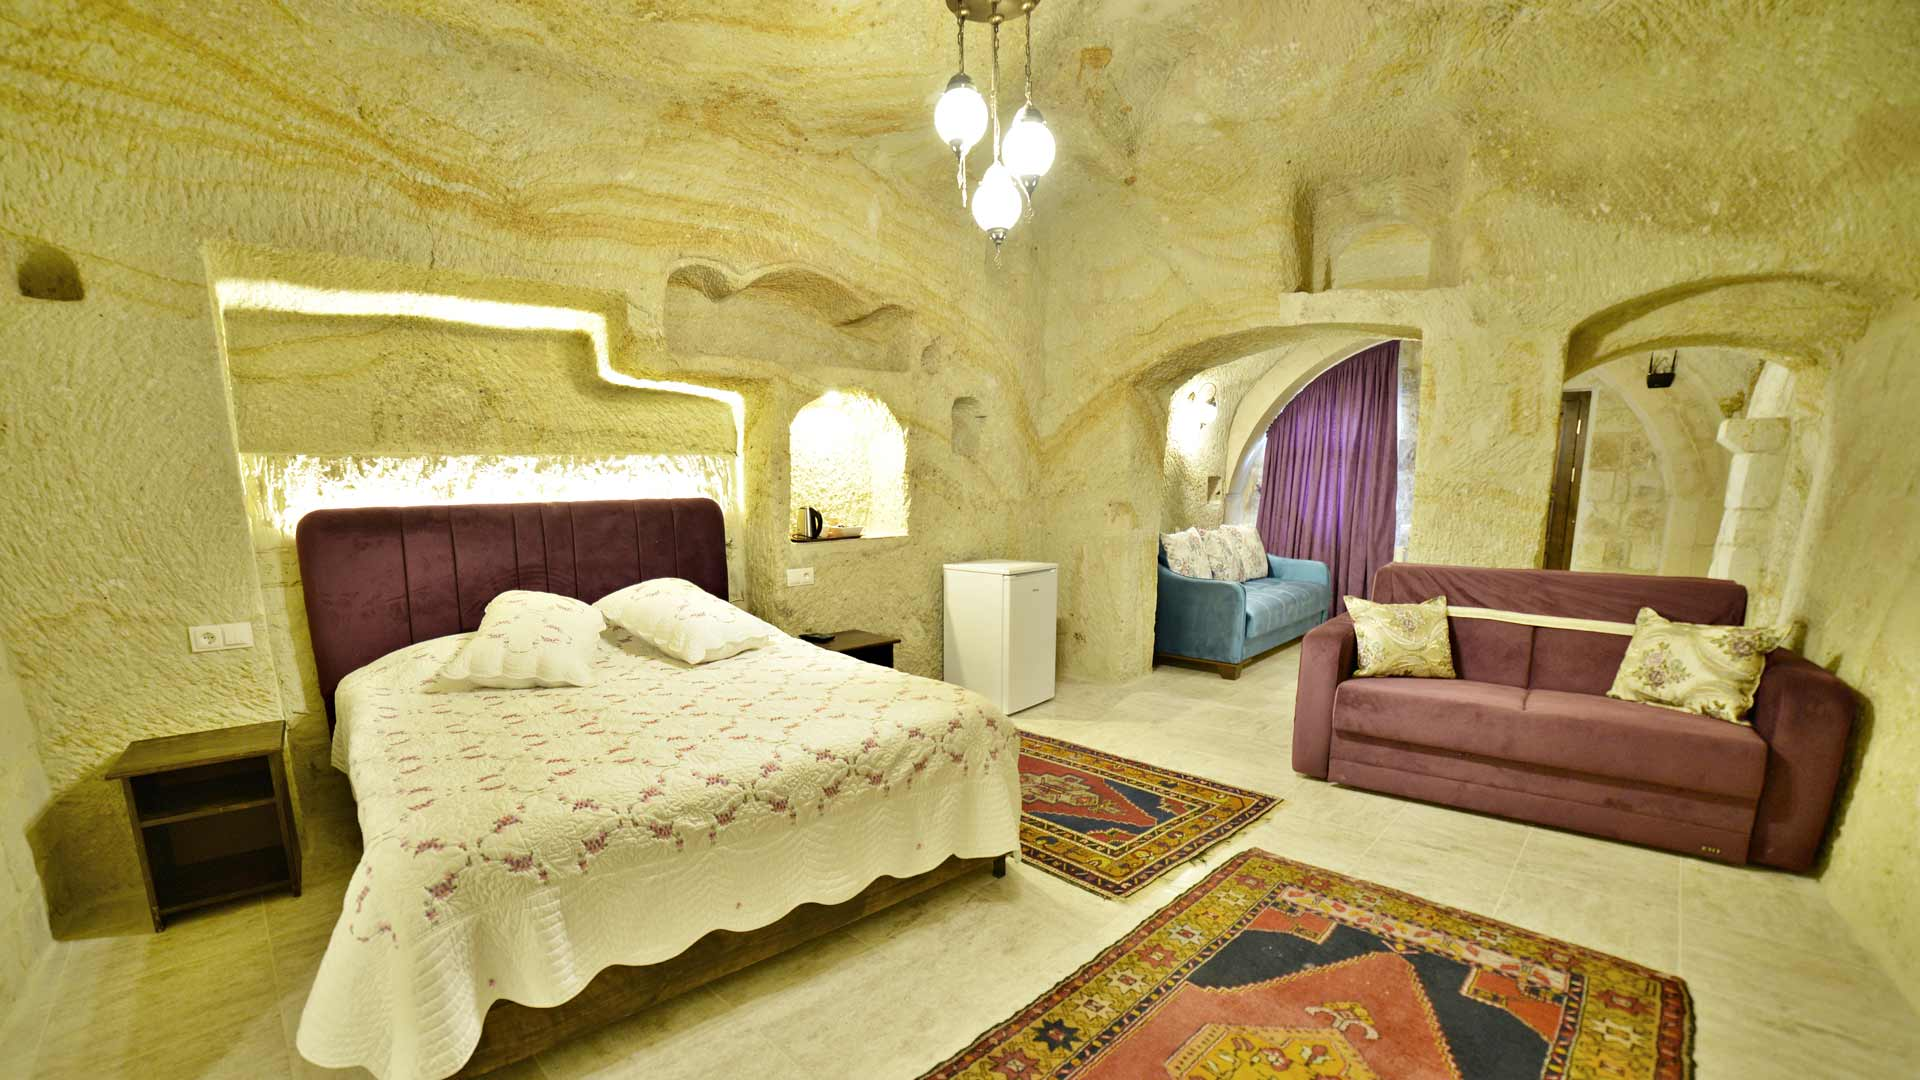 Dedluxe Rooms at Dedeli Konak Cave Hotel